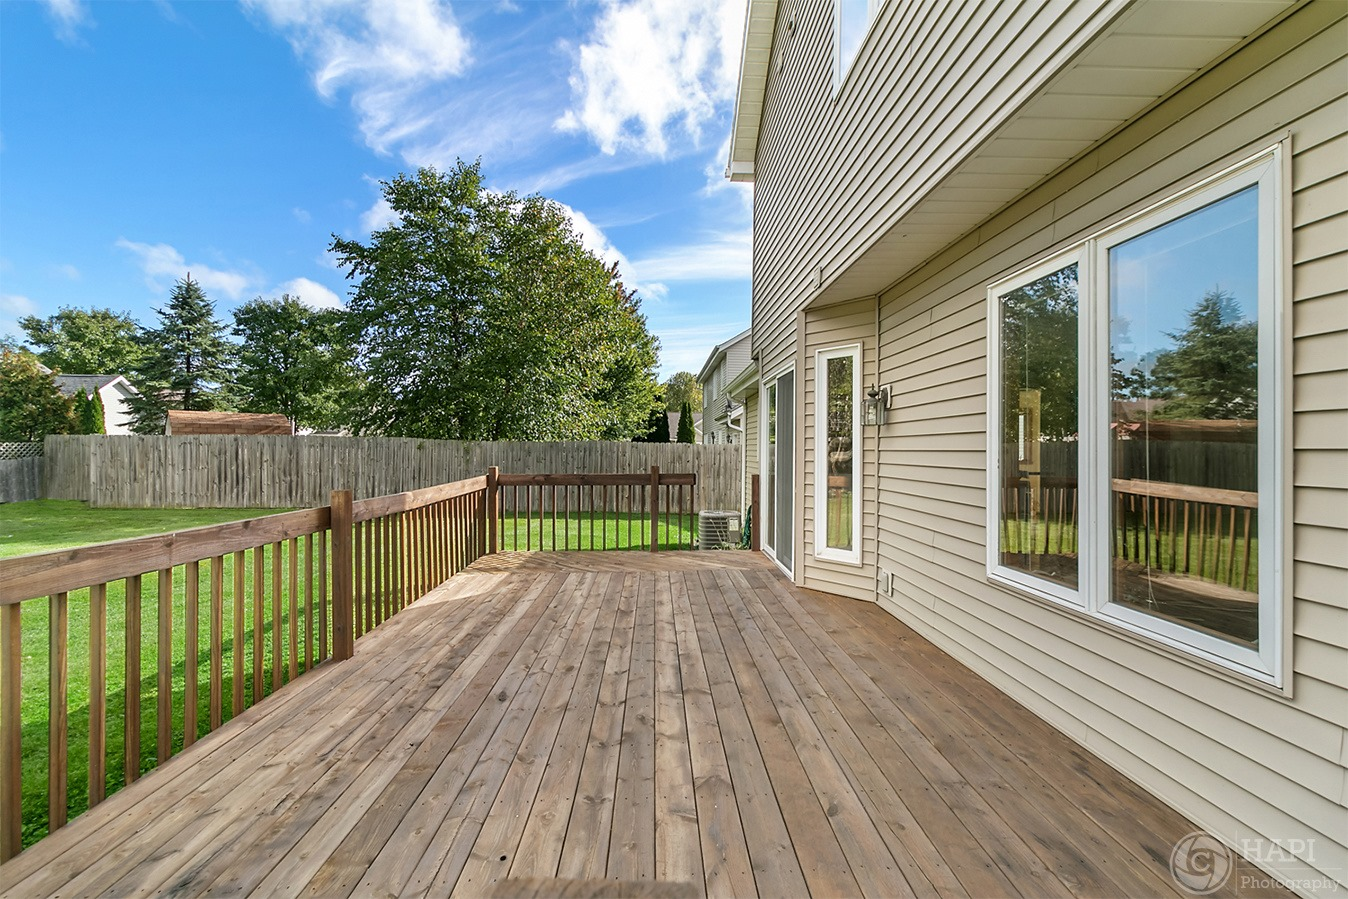 REAL ESTATE PHOTOGRAPHY  DECK PHOTO PATI